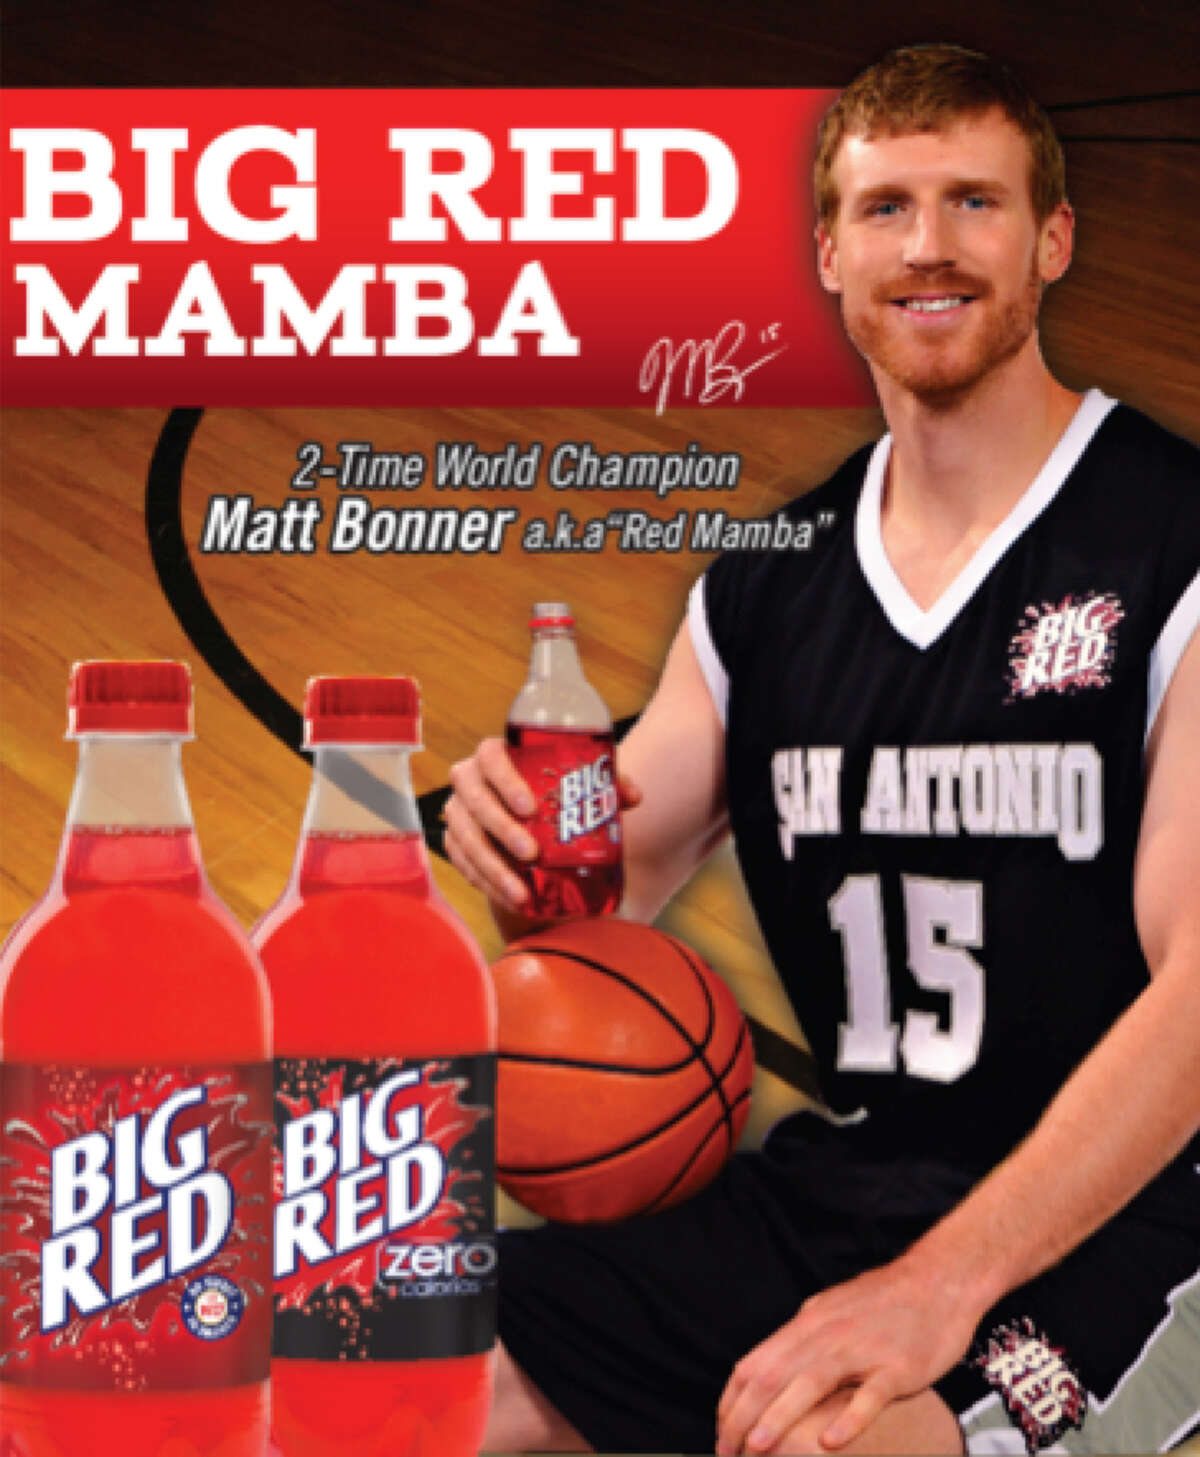 The Spurs' Matter Bonner has signed on to be a brand ambassador for San Antonio's favorite flavored soda, Big Red. But why stop there? Click through the slideshow for 11 more red products we'd like to see the